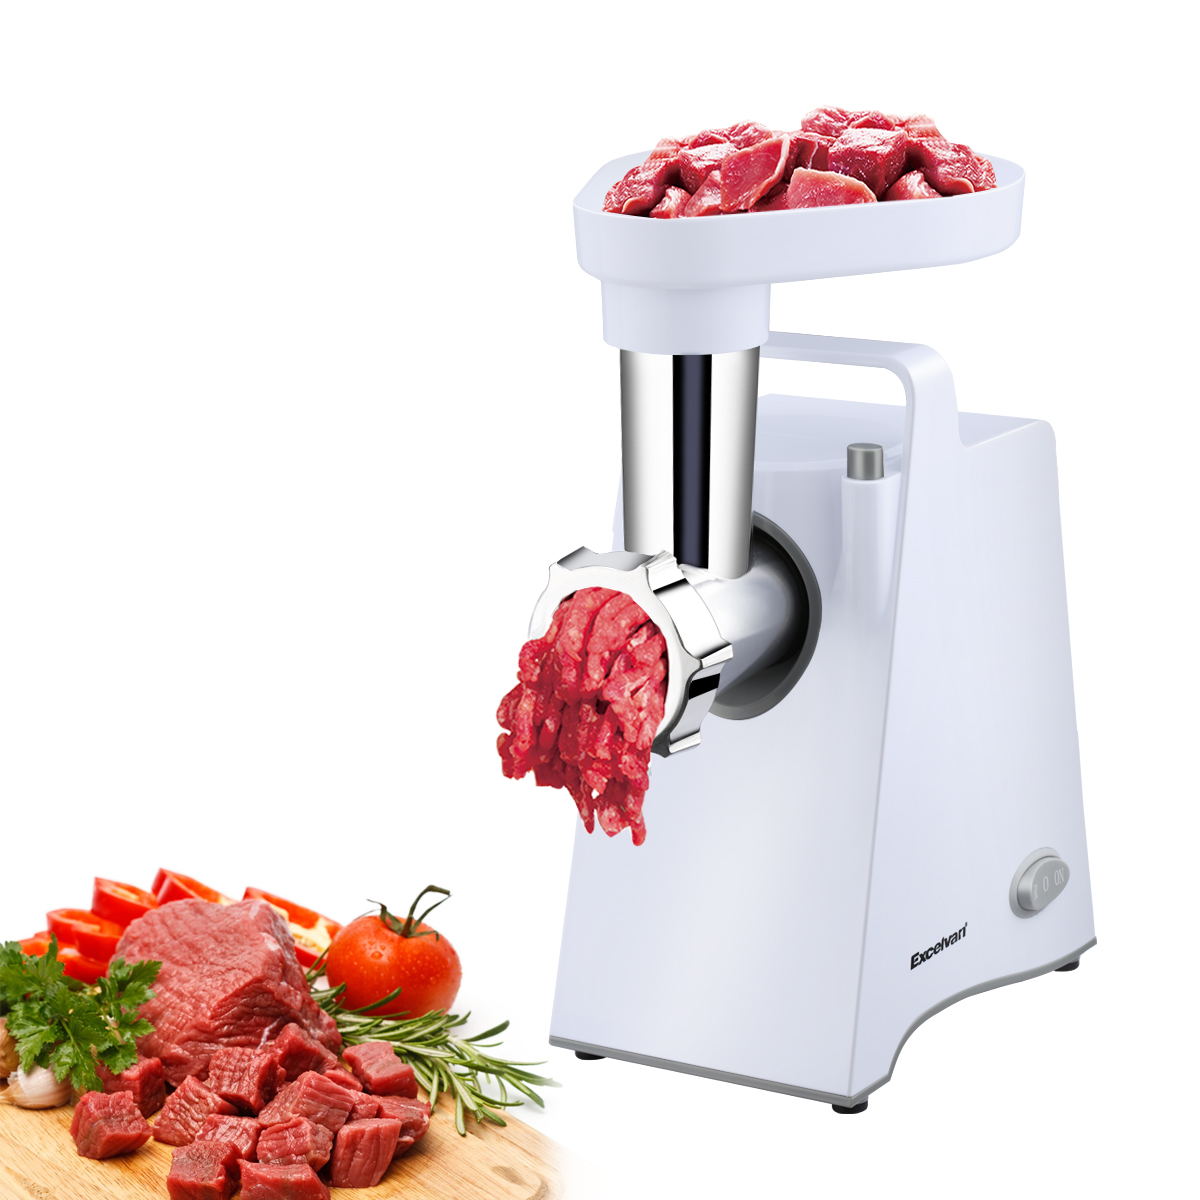 Excelvan Multifunctional Electric Meat Grinder Mincer 600W Stainless Steel Cutting Blade, 3 Grinding Plates, Kubbe & Sausage Stuff Maker and Pusher Attachments, Home Kitchen Tool